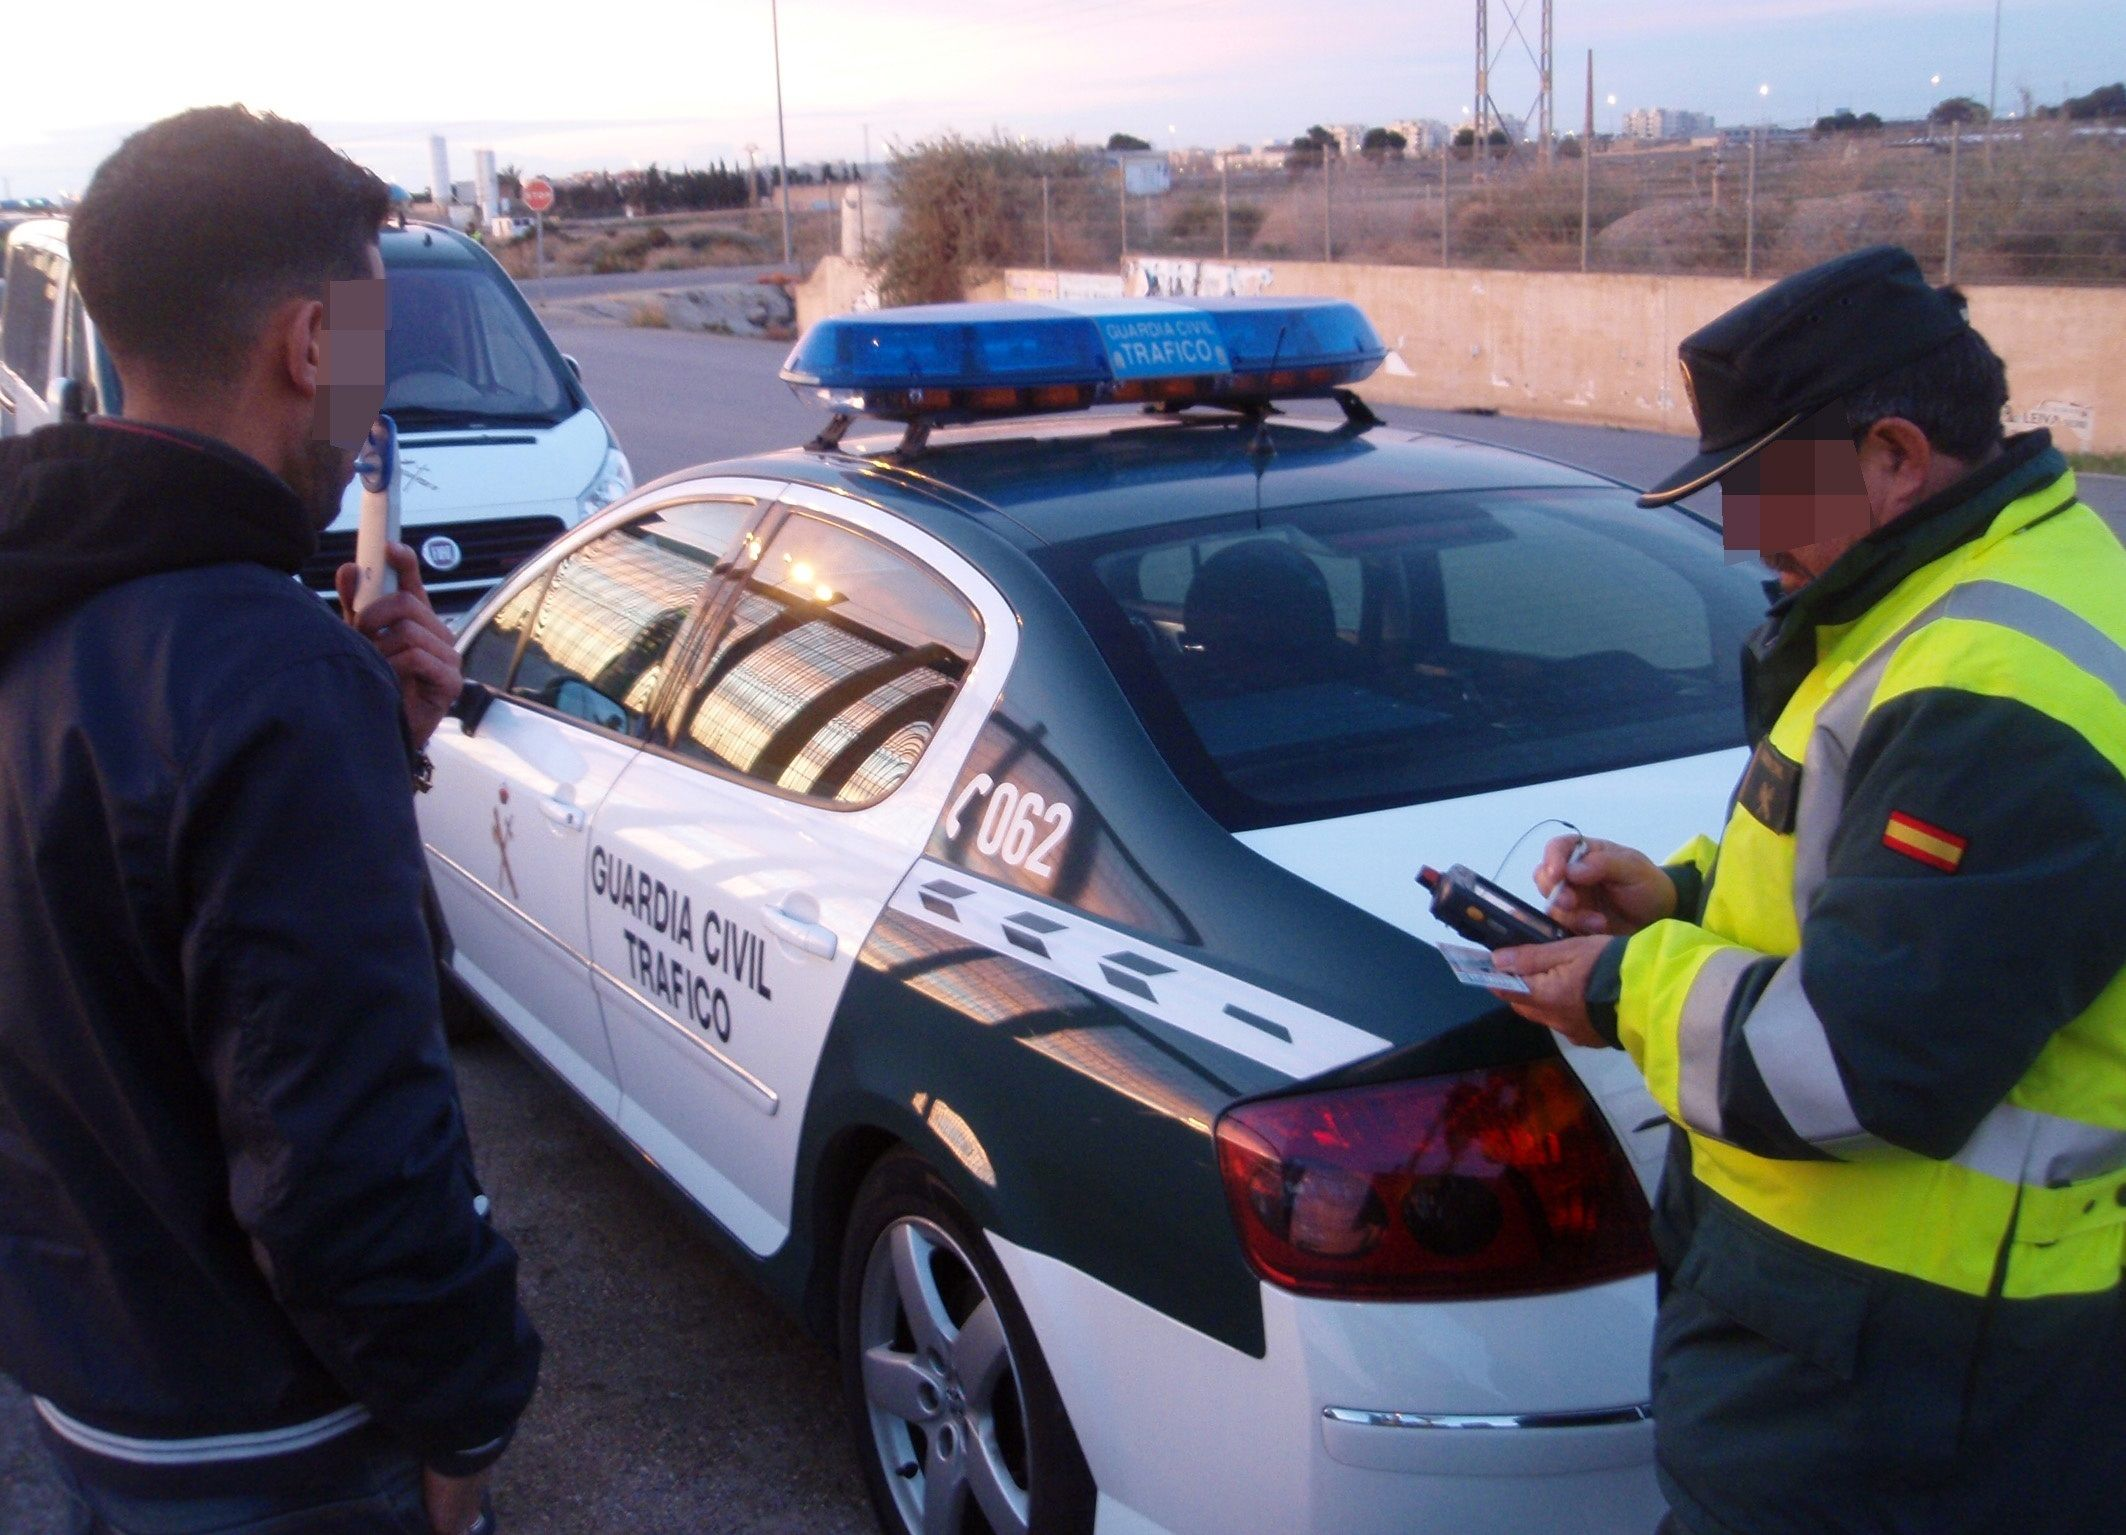 Control de alcoholemia de la Guardia Civil. Foto EuropaPress